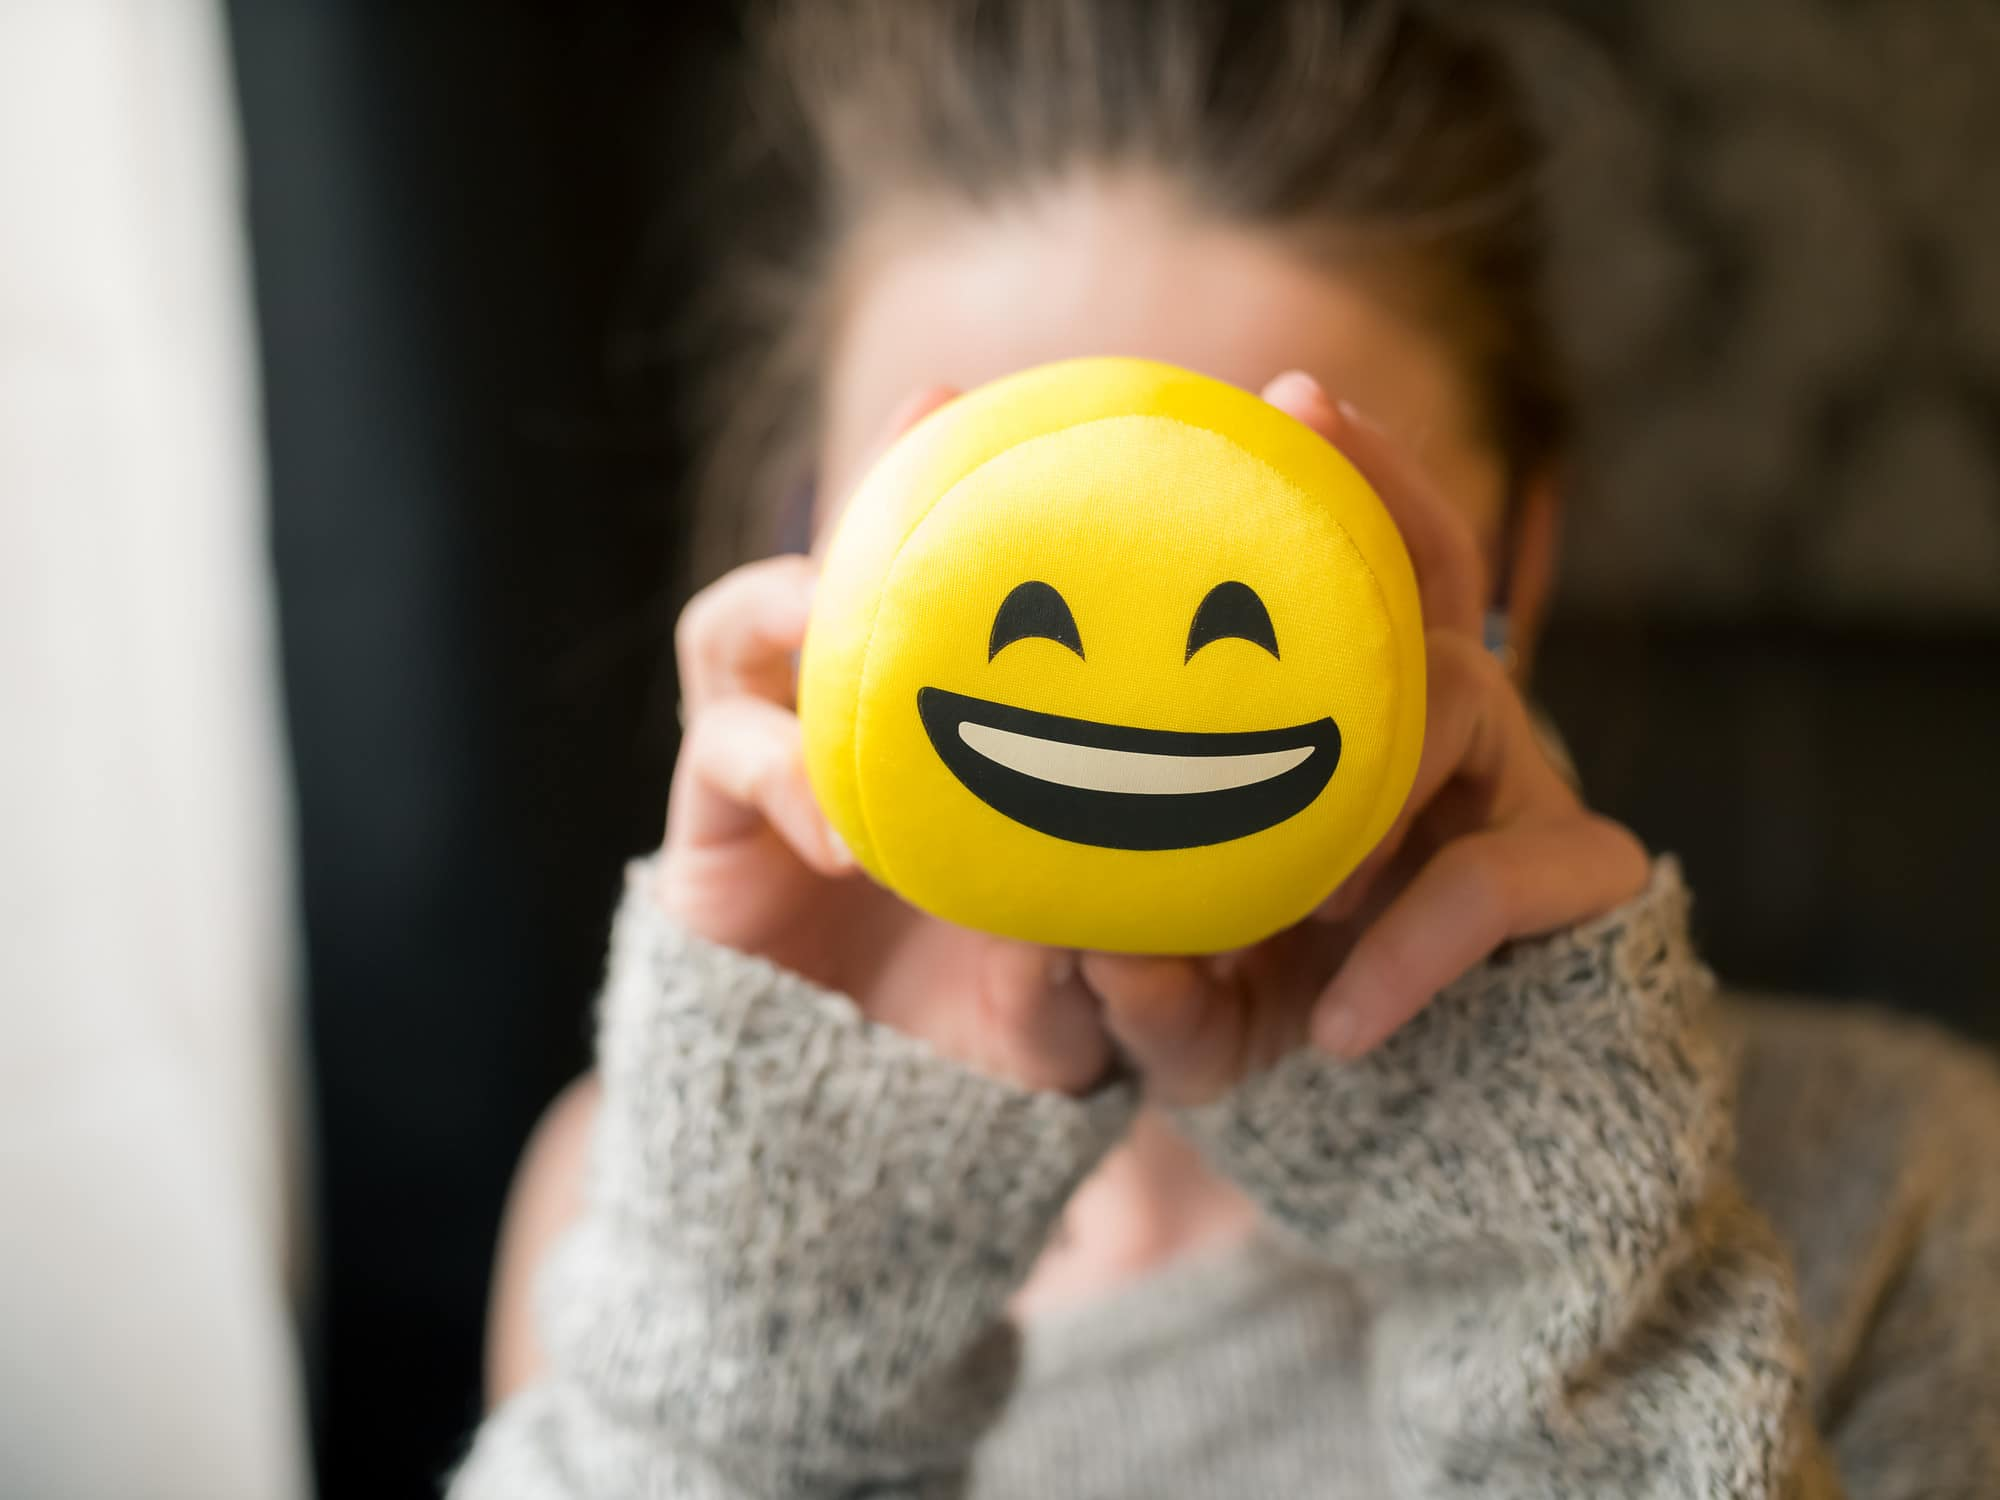 Girl holding a smiley face toy up to her face